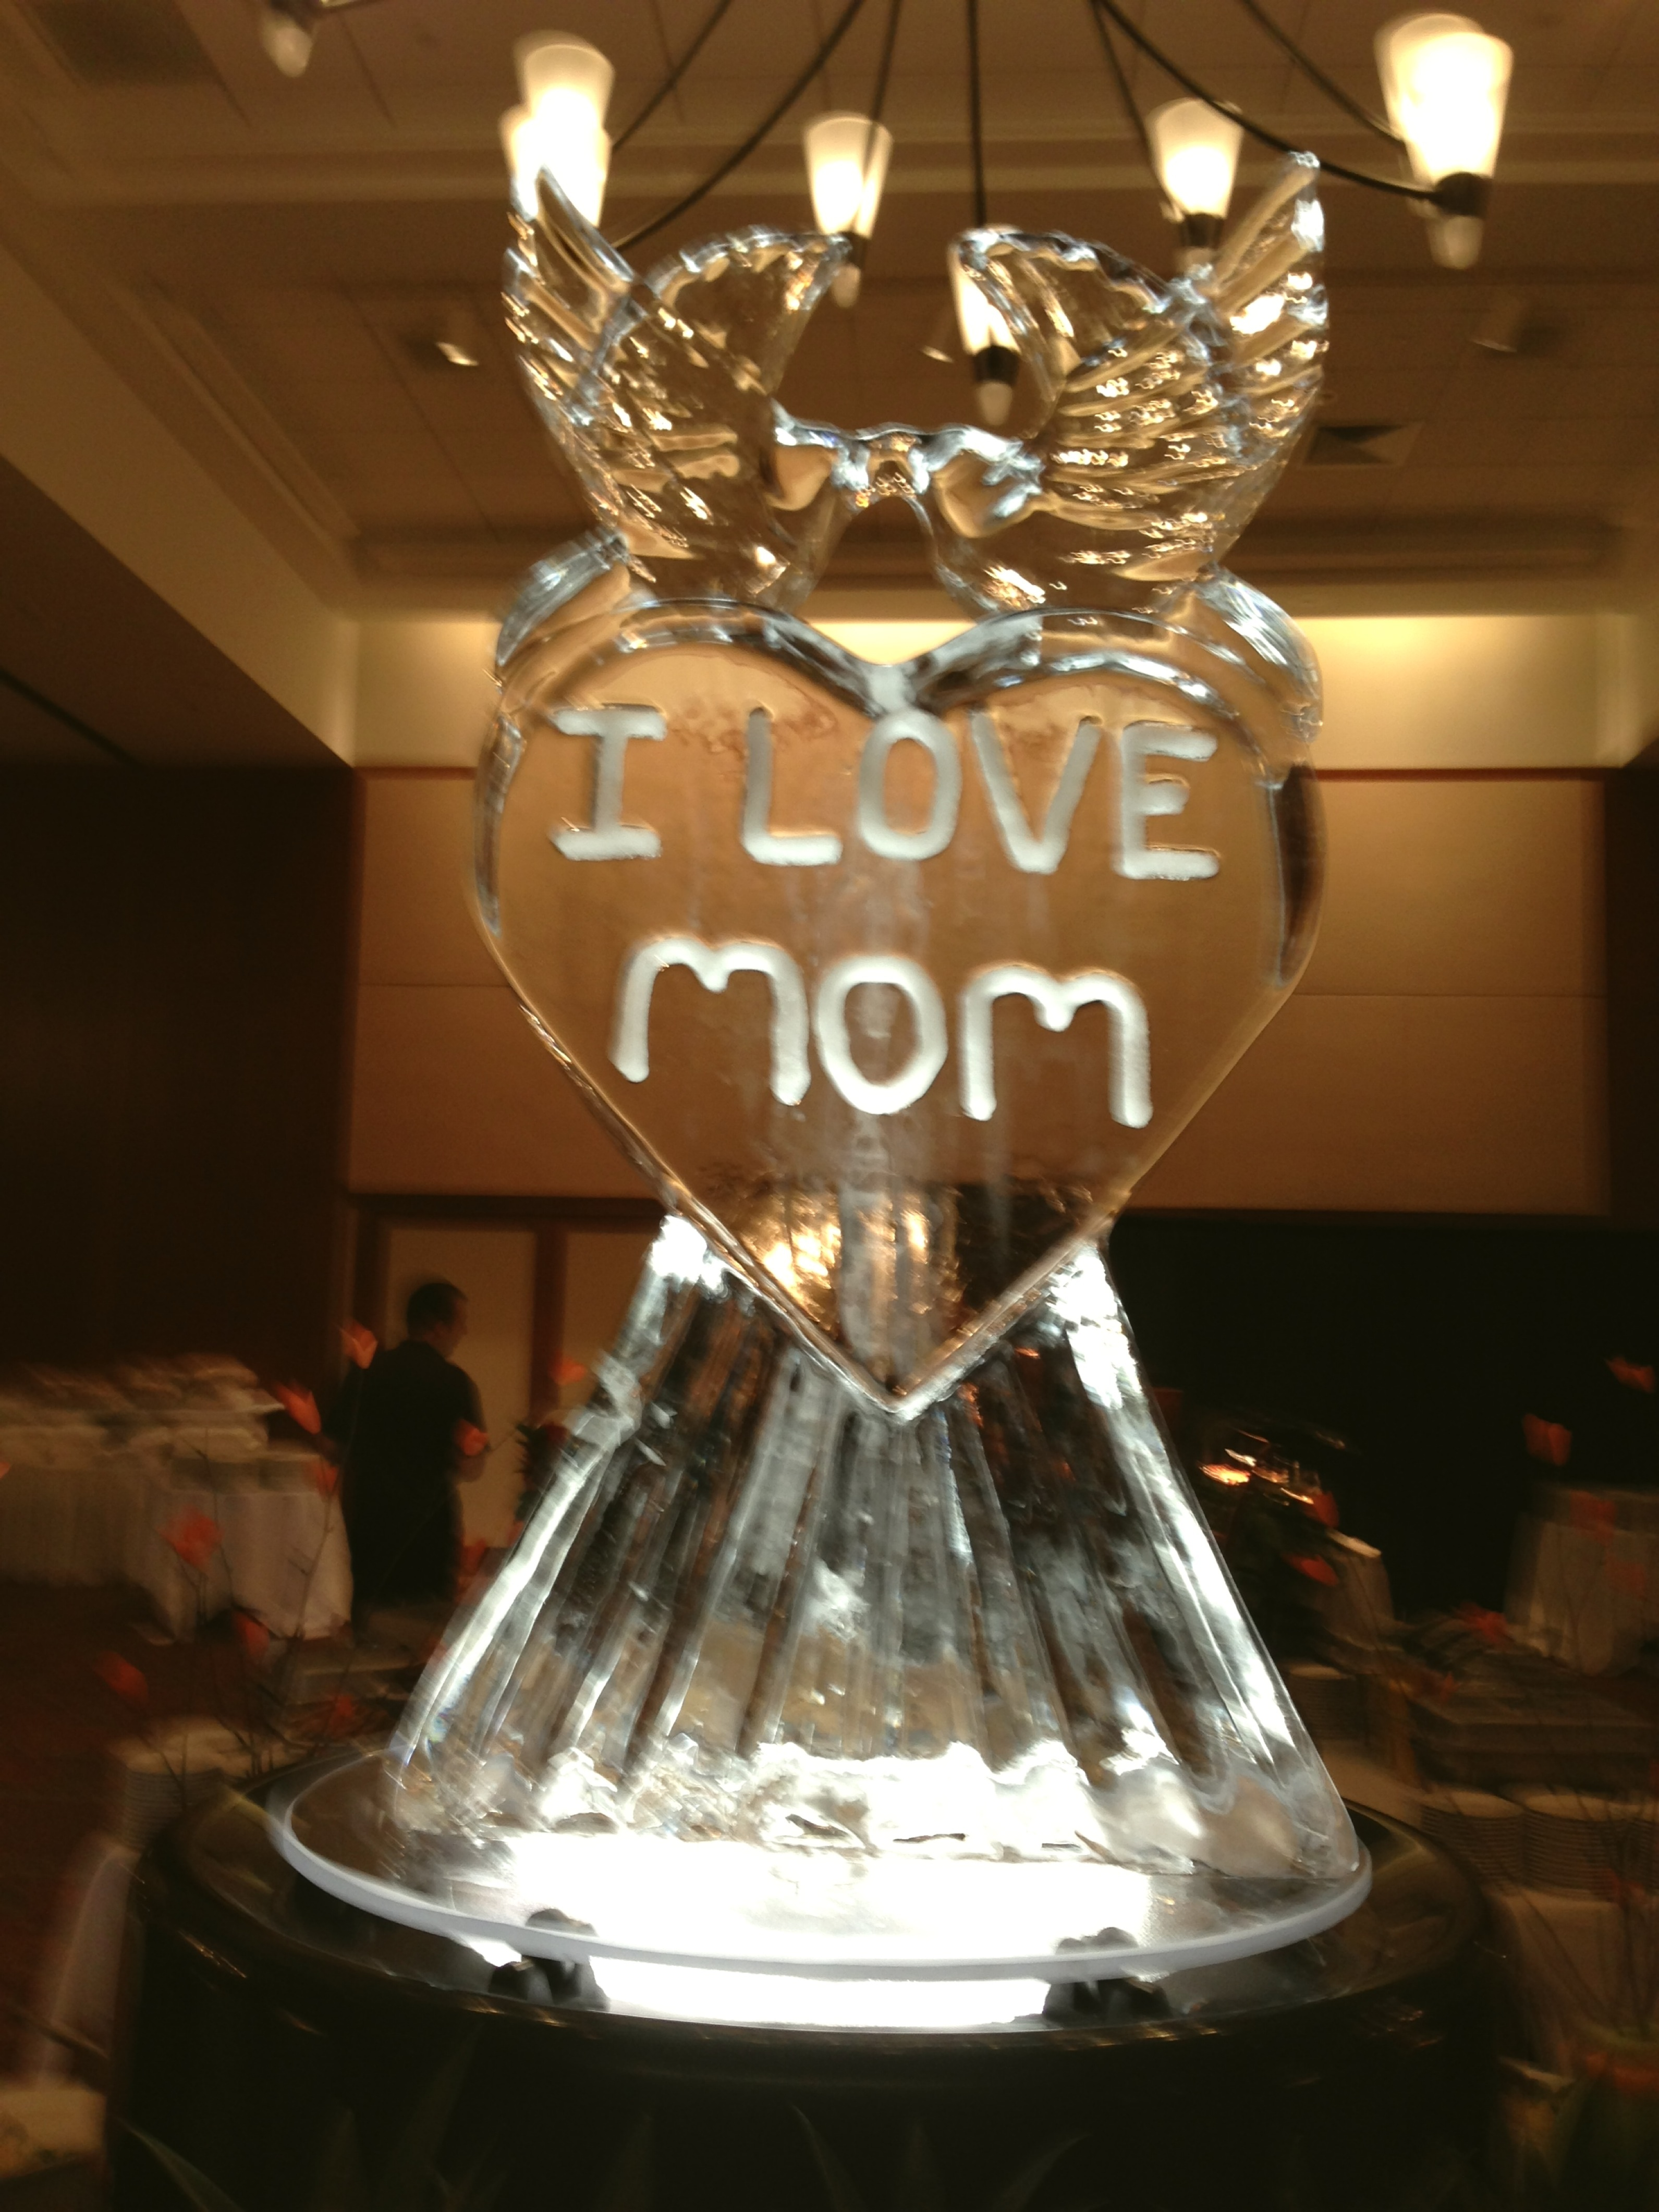 Happy Mothers day ice carving